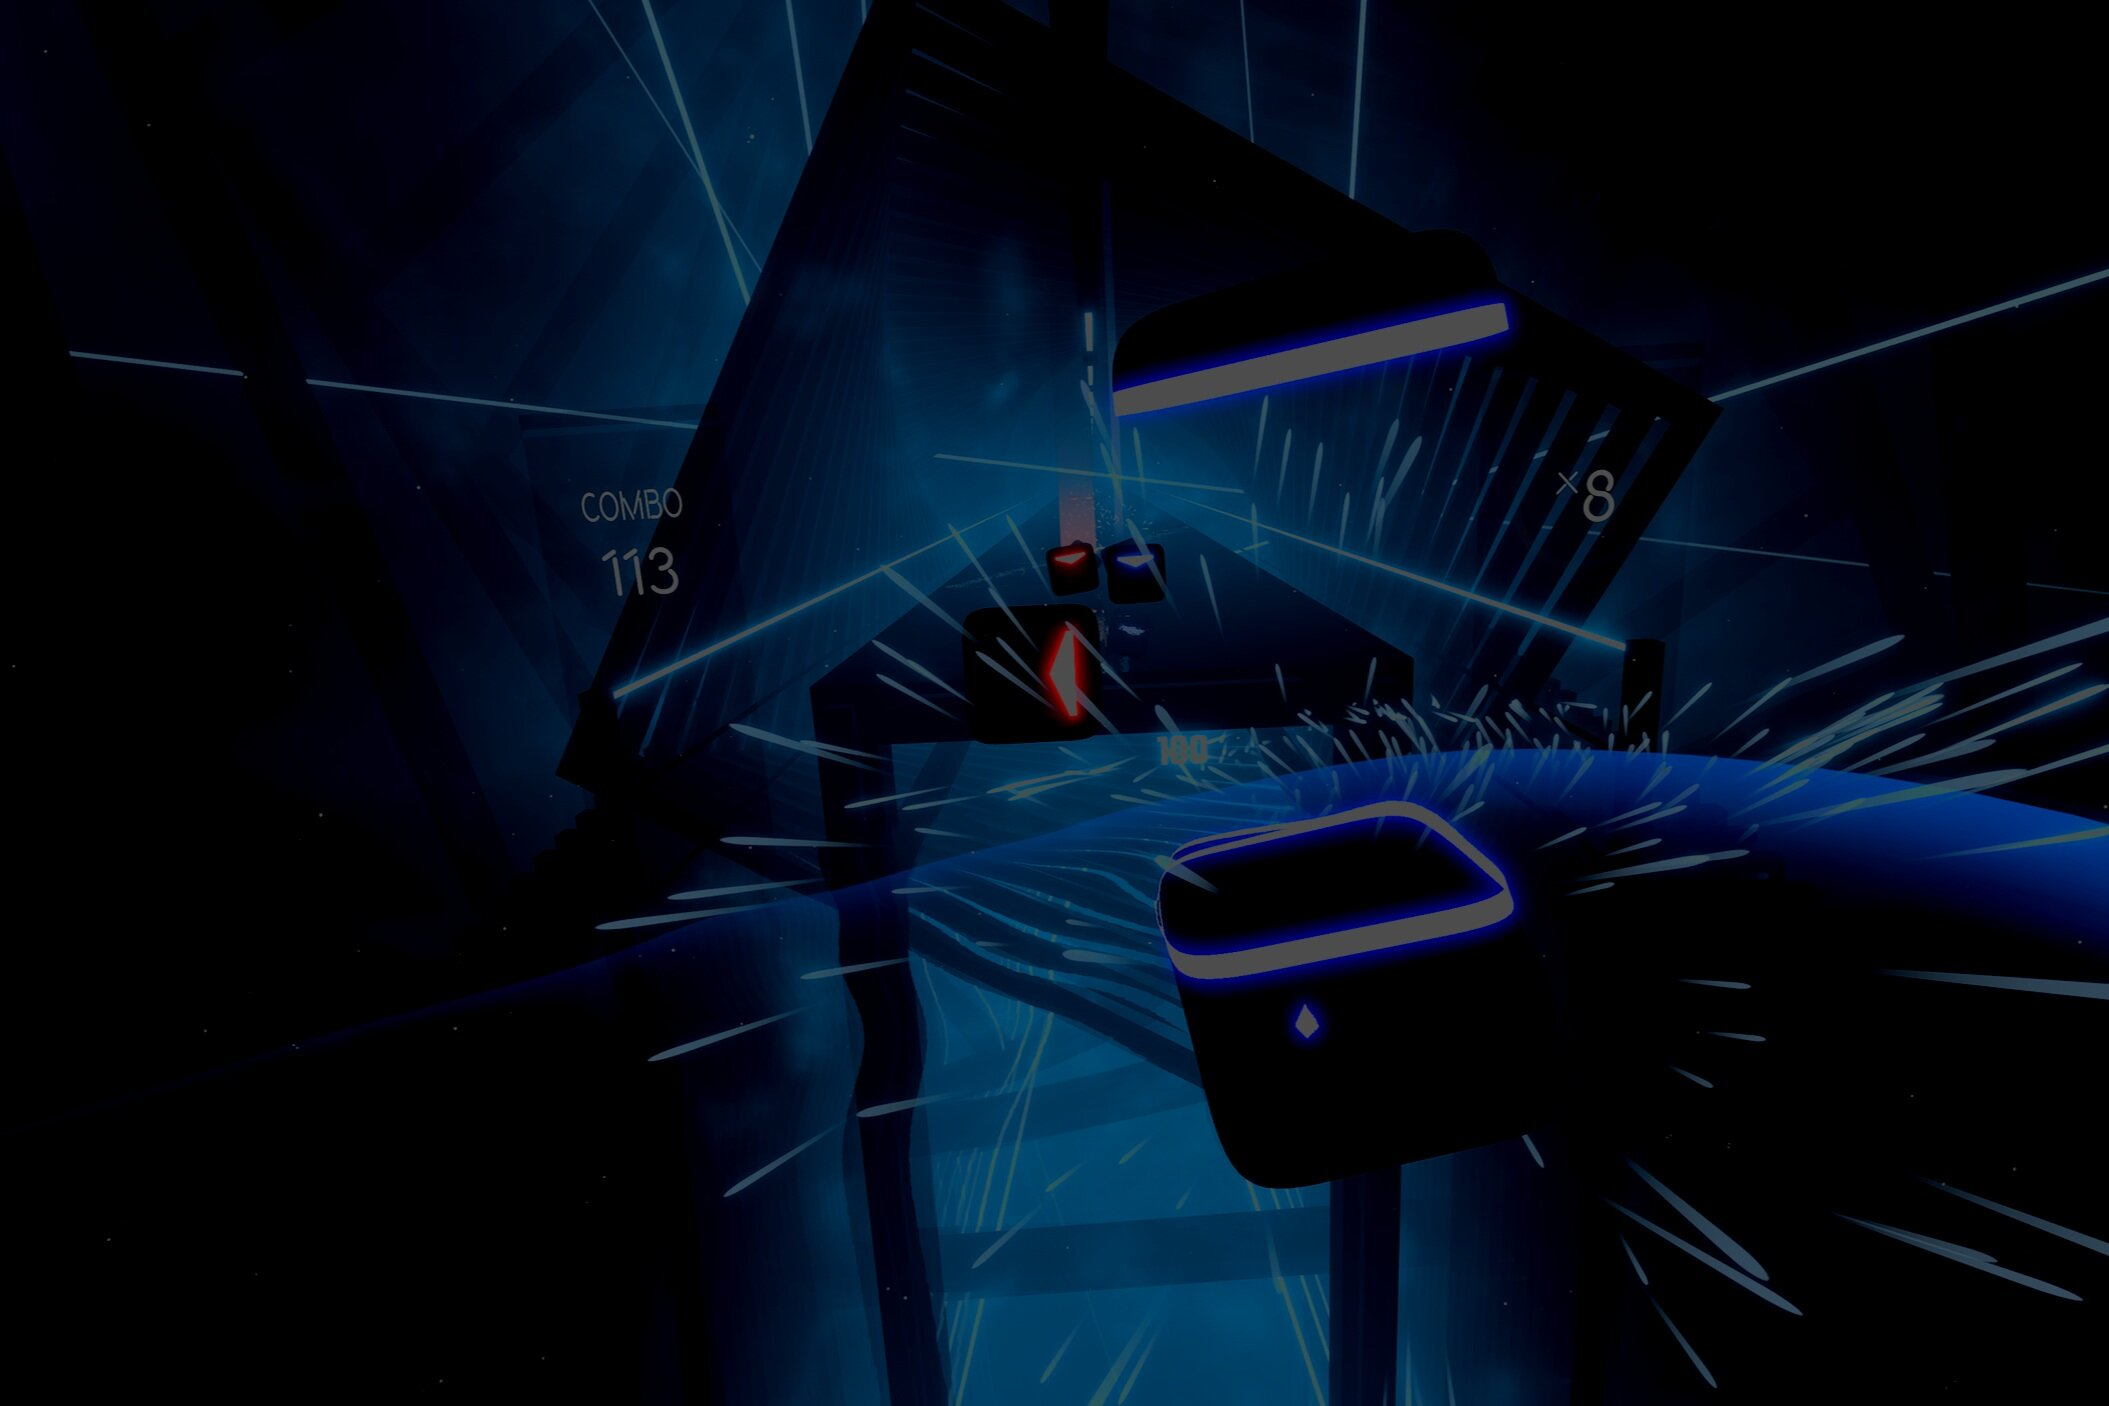 Beat Saber - Enter this revolutionary rhythm/dance/sword game and slice the music as it flies at you.